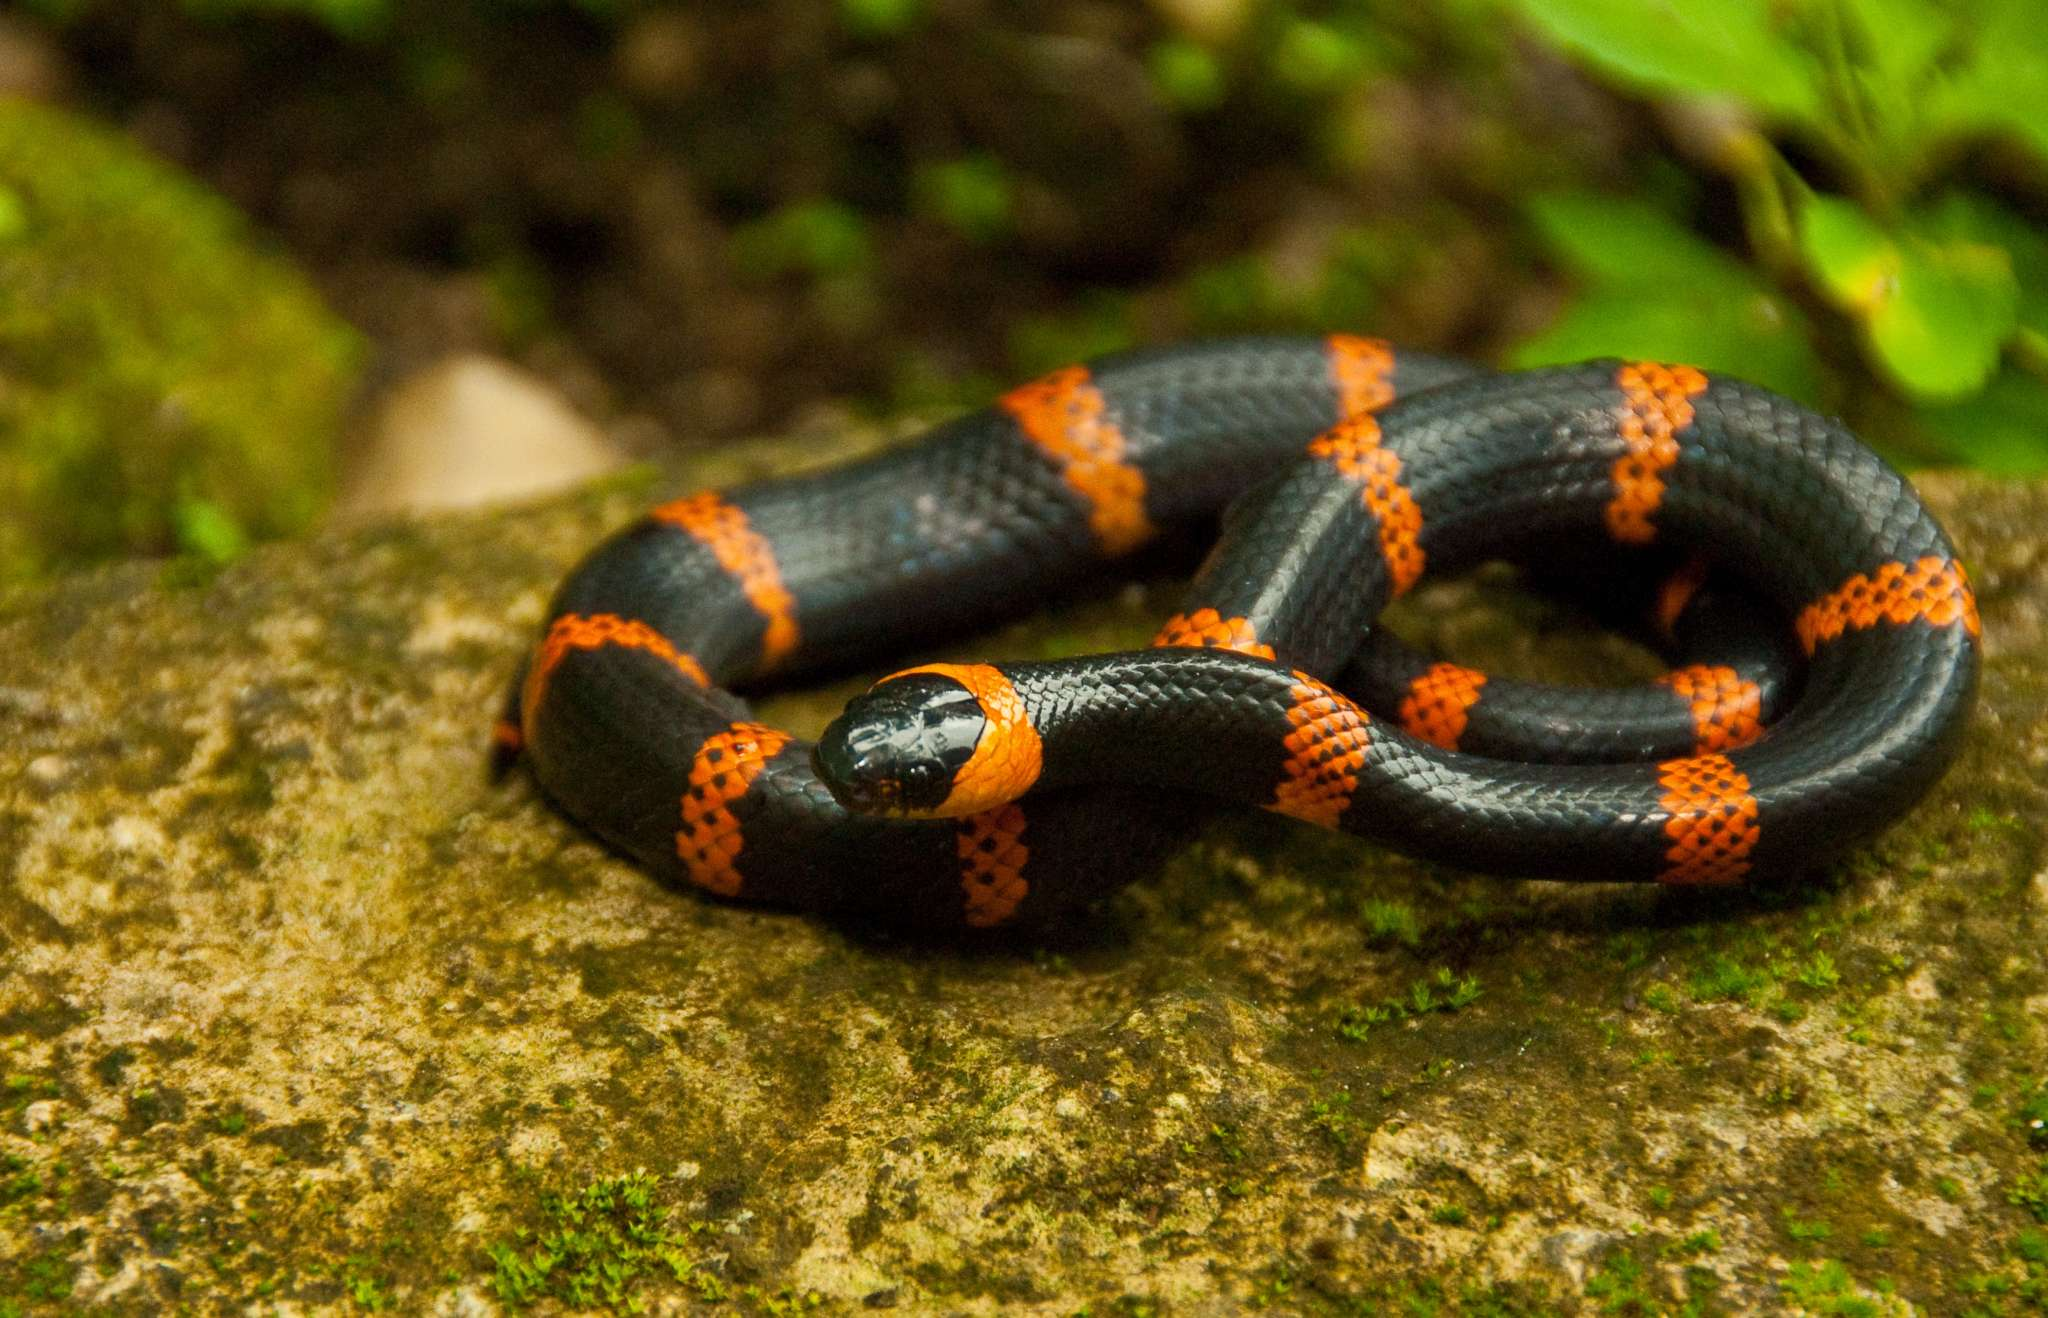 A snake in the rainforests of Calakmul Biosphere Reserve, Mexico. Wildlife in the reserve is greatly affected by climate change and droughts